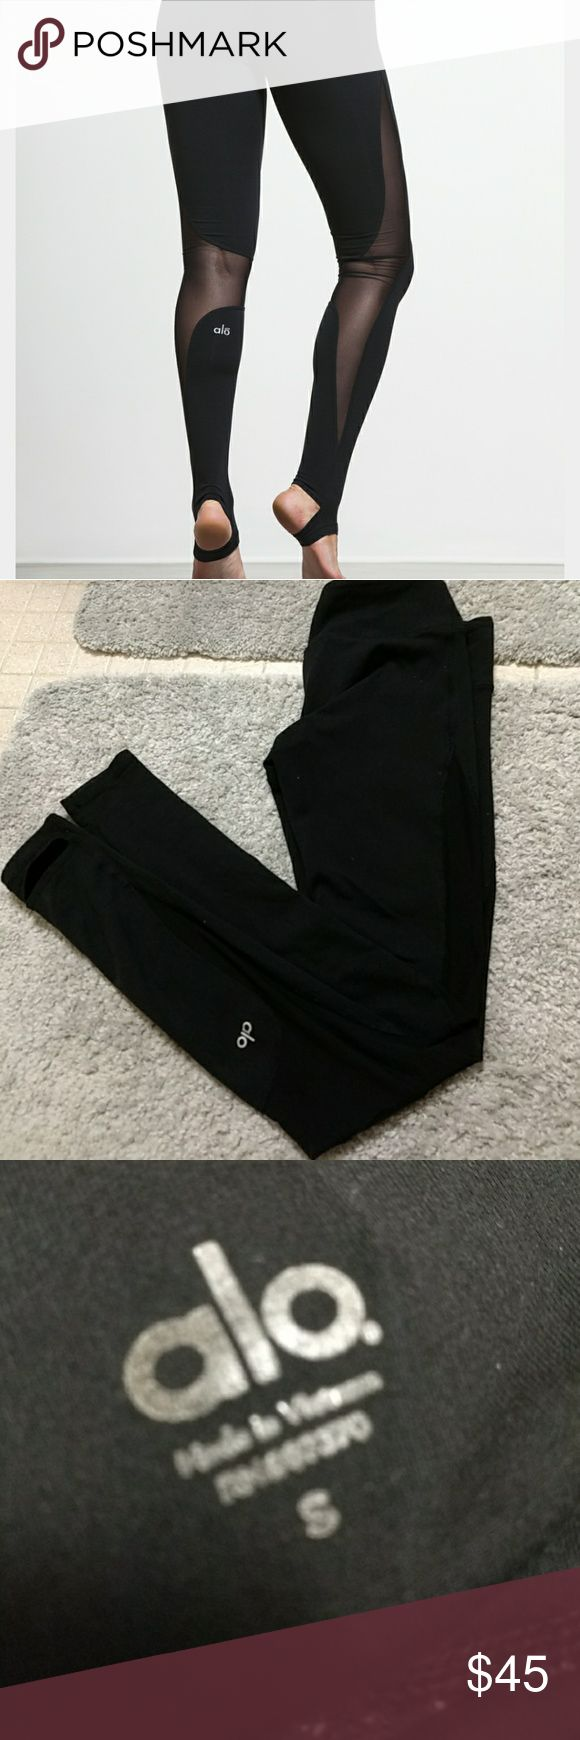 Alo yoga coast legging Black leggings with side mesh! Great condition just some pilling in thigh area but nothing noticeable when worn but this is taken into account of the price! No other flaws! ALO Yoga Pants Leggings